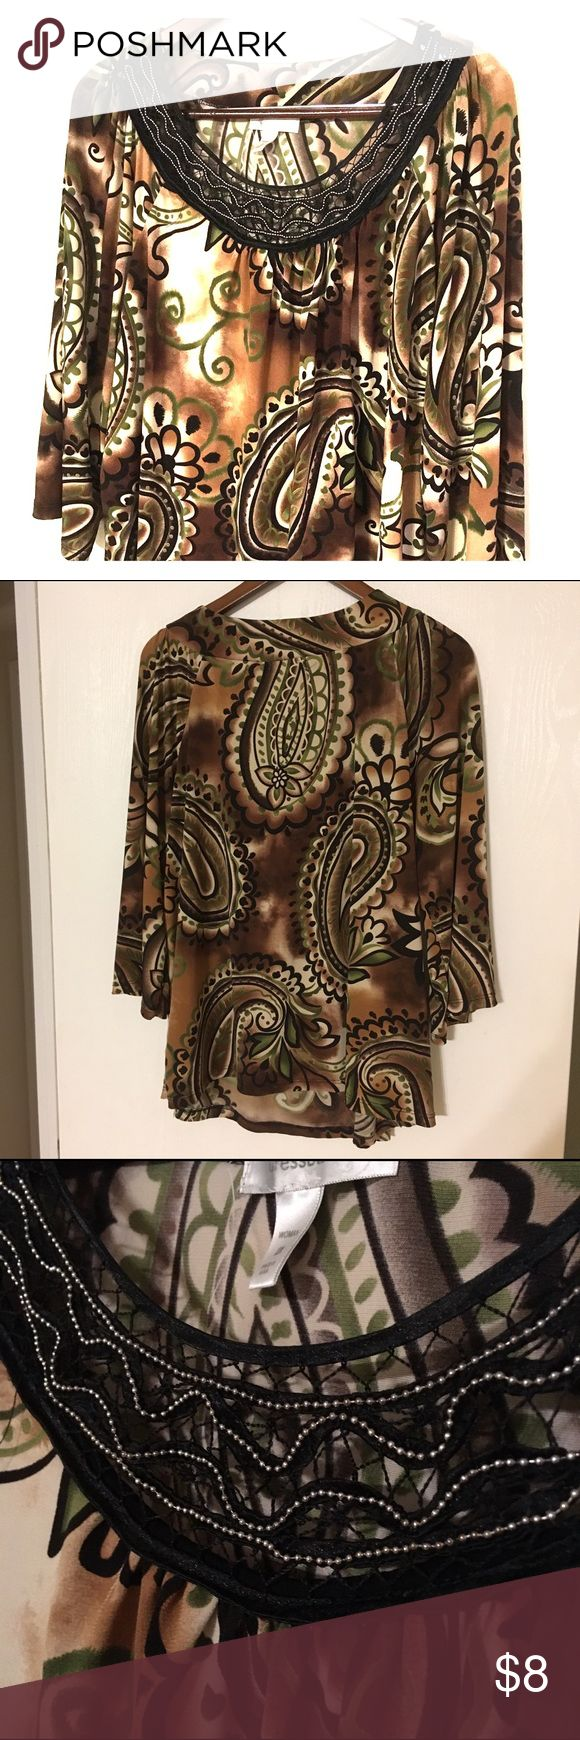 Neutral Blouse Lane Bryant brown and green blouse. Hangs and flows nicely. Well used but still in good condition. Straight hem with 3/4 sleeves. No holes rips or tears. Does not wrinkle easily. Has black and brown so it goes well with black or brown shoes/pants/accessories. Lane Bryant Tops Blouses